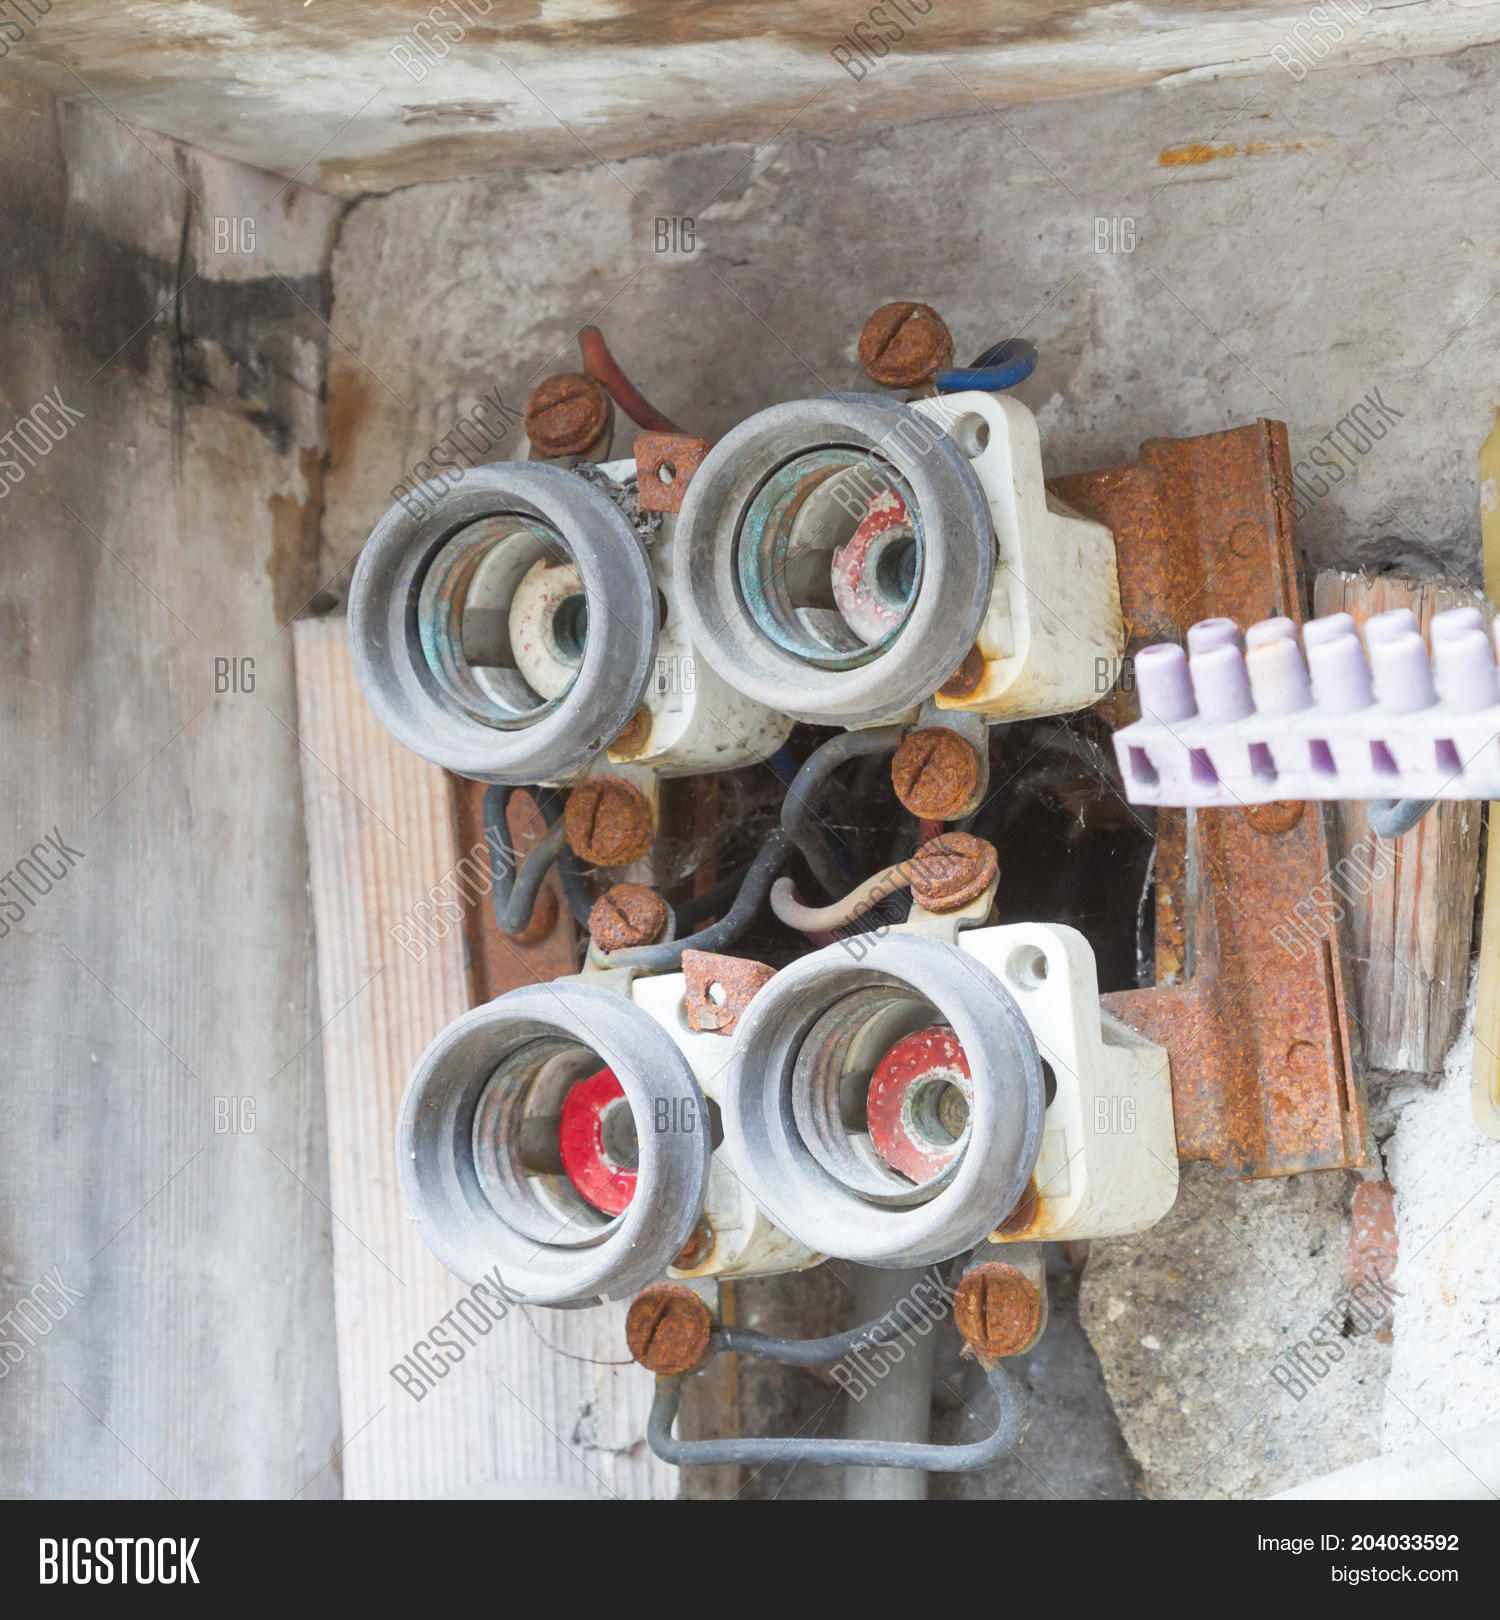 Very Old Fusebox Image Photo Free Trial Bigstock Fuse Box